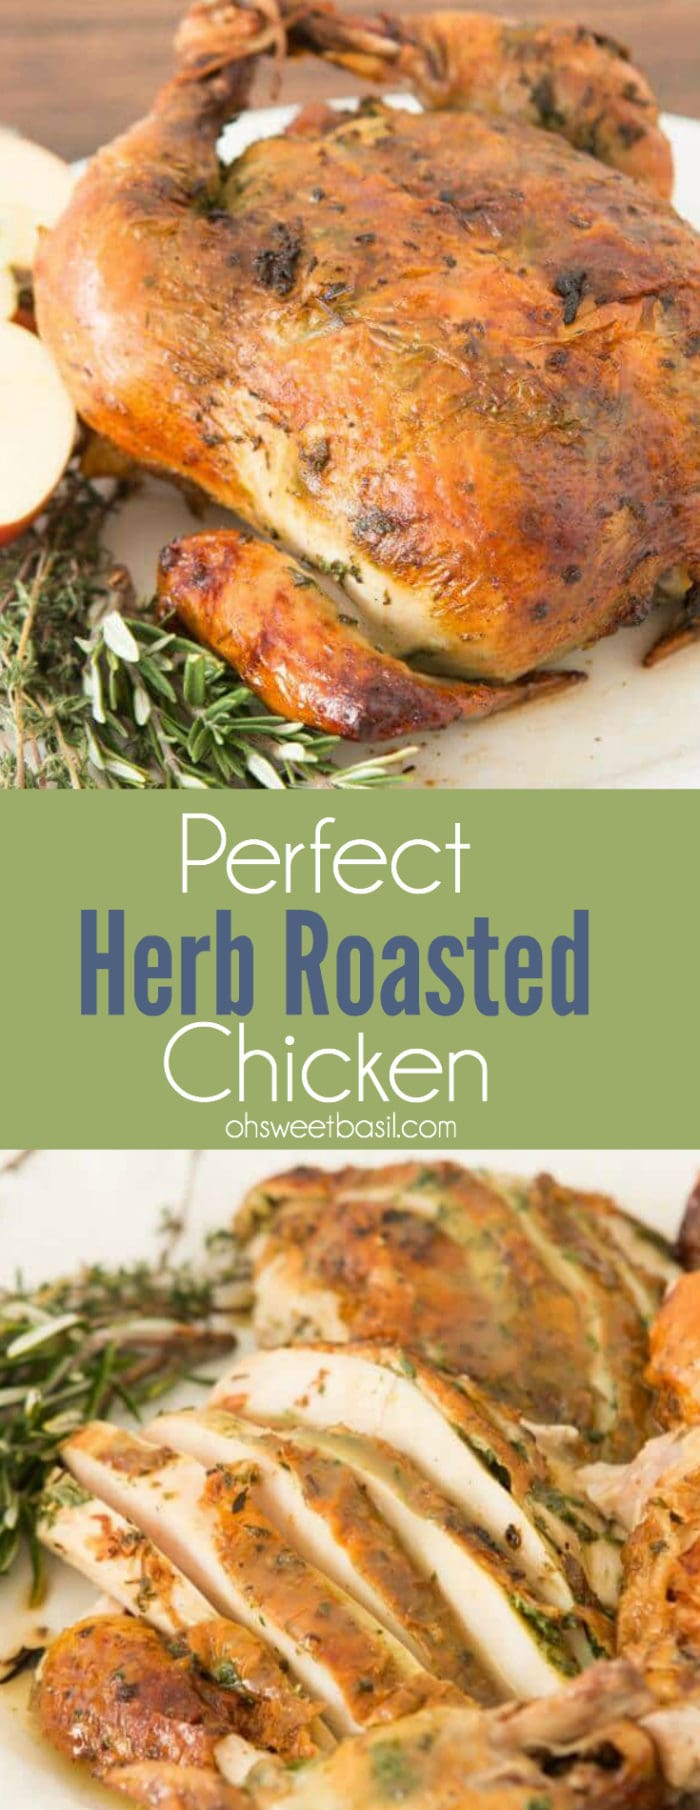 Slices of our favorite Roasted Chicken Breast with herbs